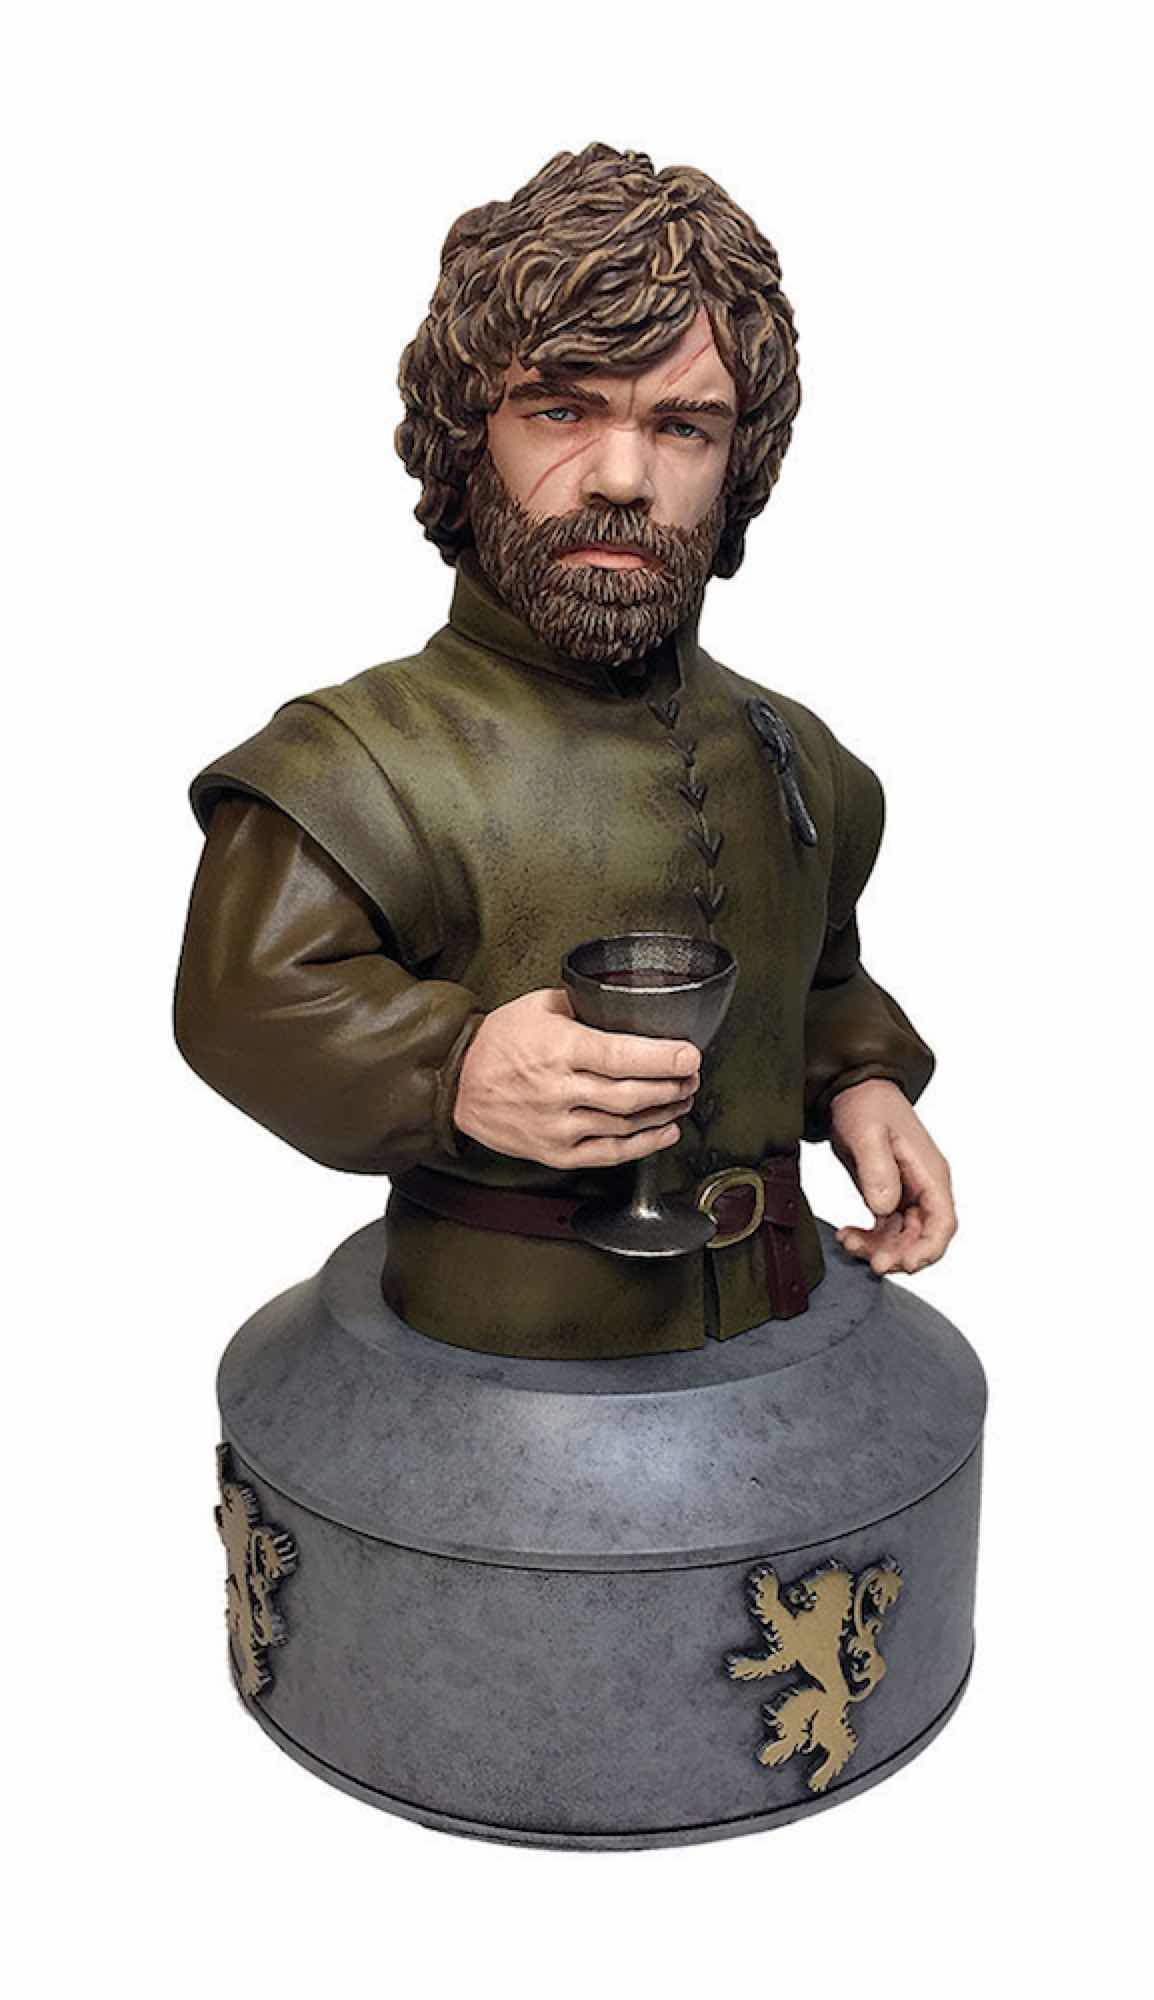 TYRION LANNISTER MANO DE LA REINA BUSTO 19 CM GAME OF THRONES